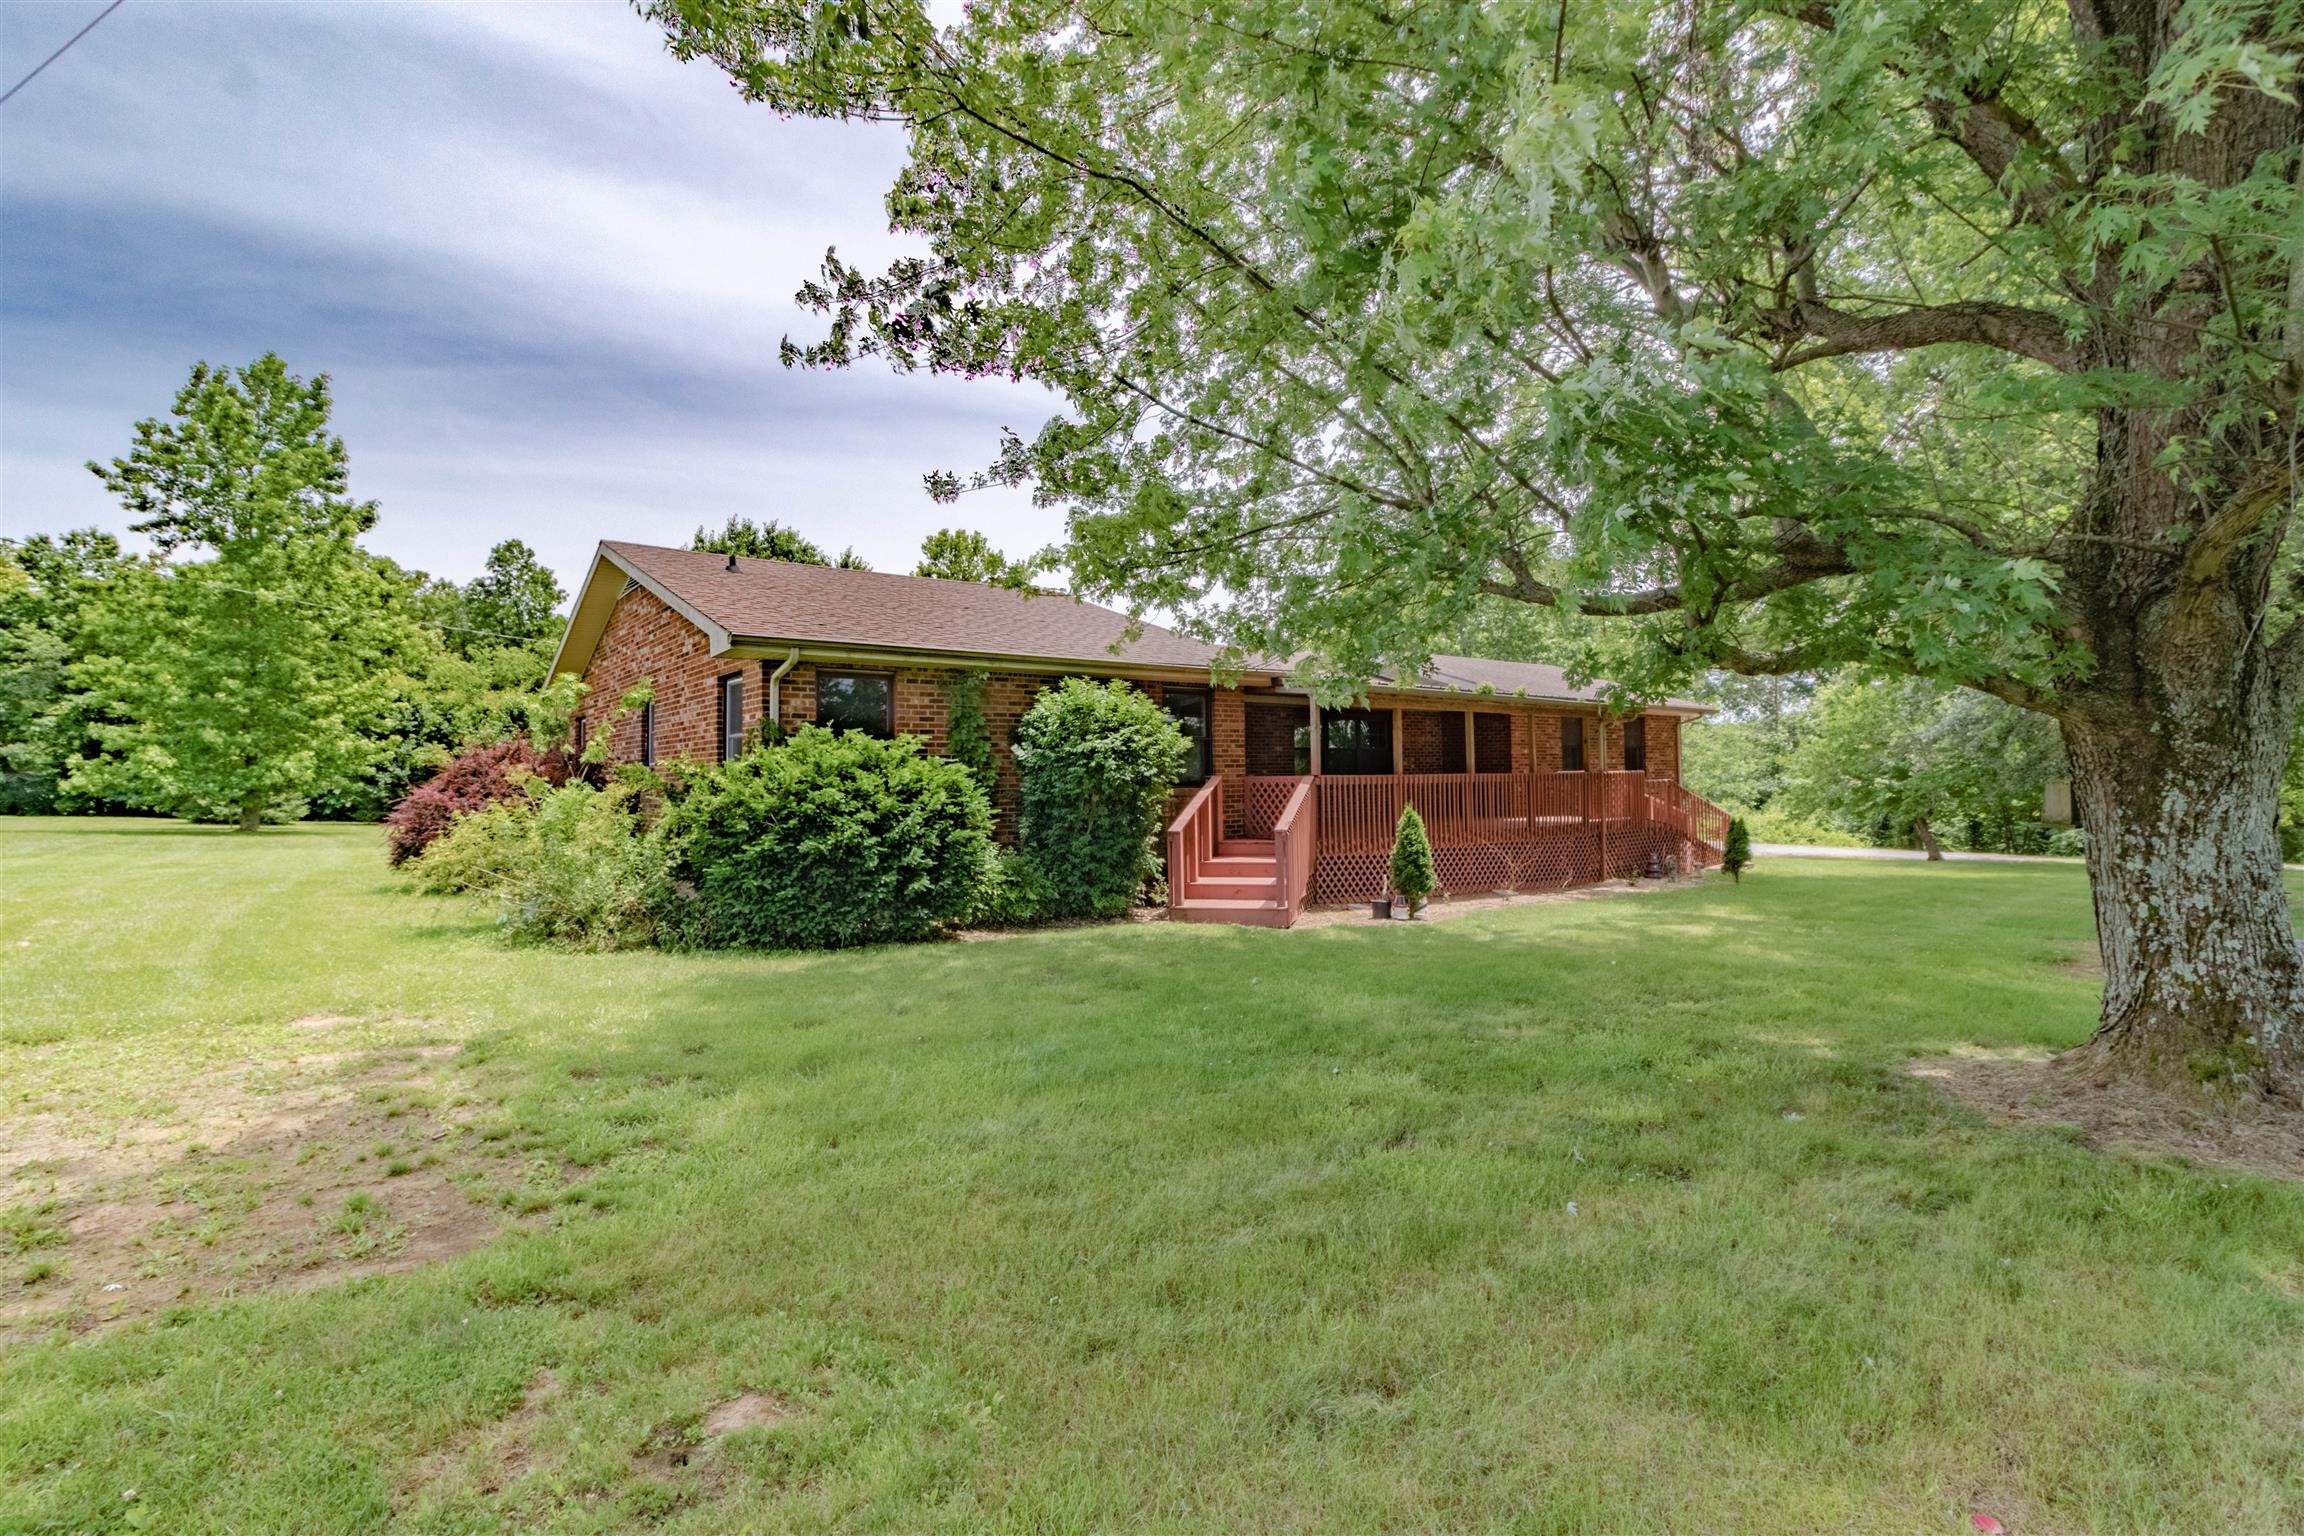 18060 Old Palestine Rd, Crofton, KY 42217 - Crofton, KY real estate listing